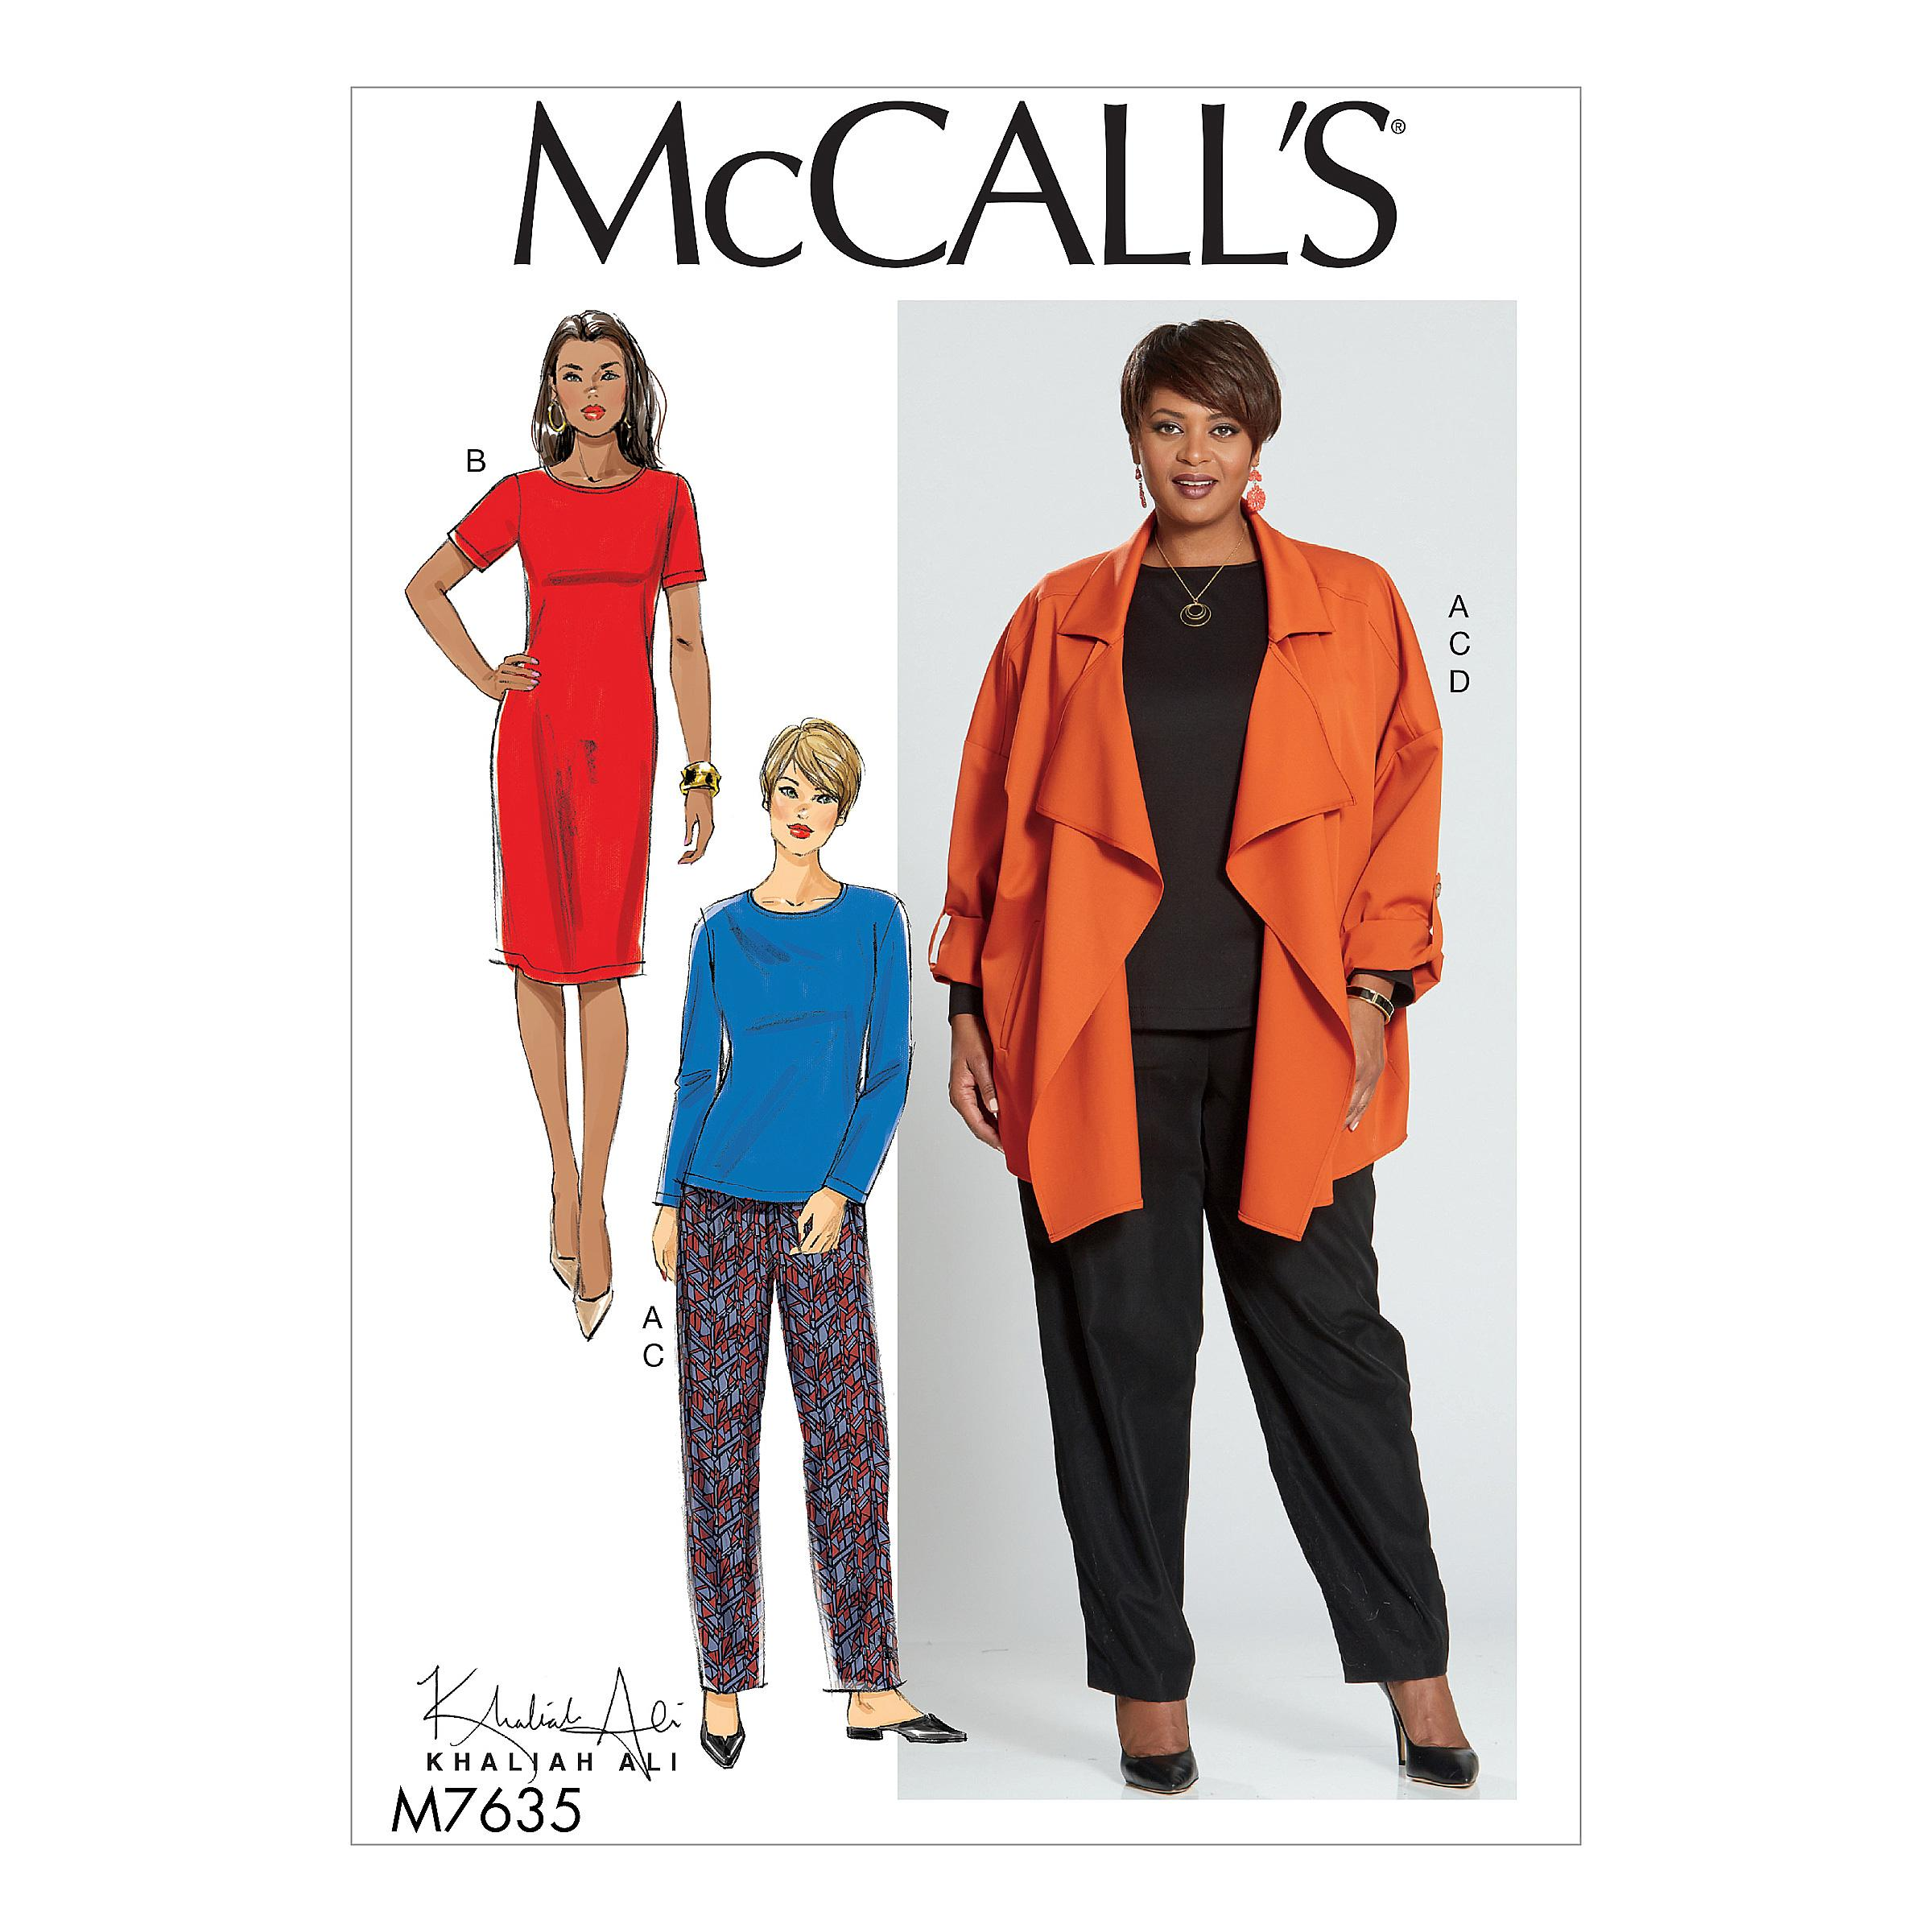 McCalls M7635 Misses Coordinates, Misses Dresses, Misses Jackets & Vests, Misses Pants, Jumpsuits & Shorts, Misses Tops, Plus Sizes